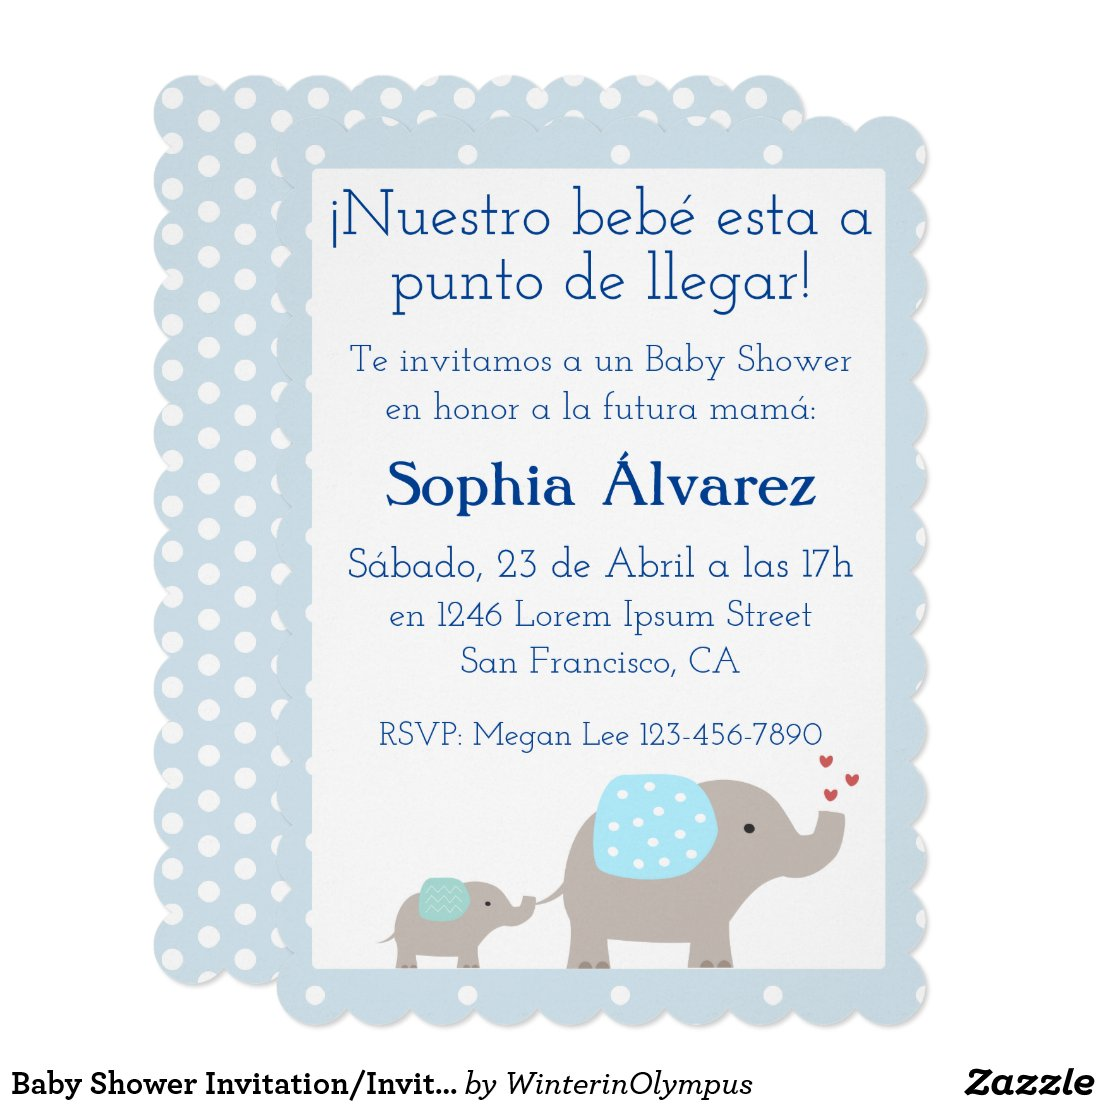 Baby Shower Invitation/Invitación para Baby Shower Card